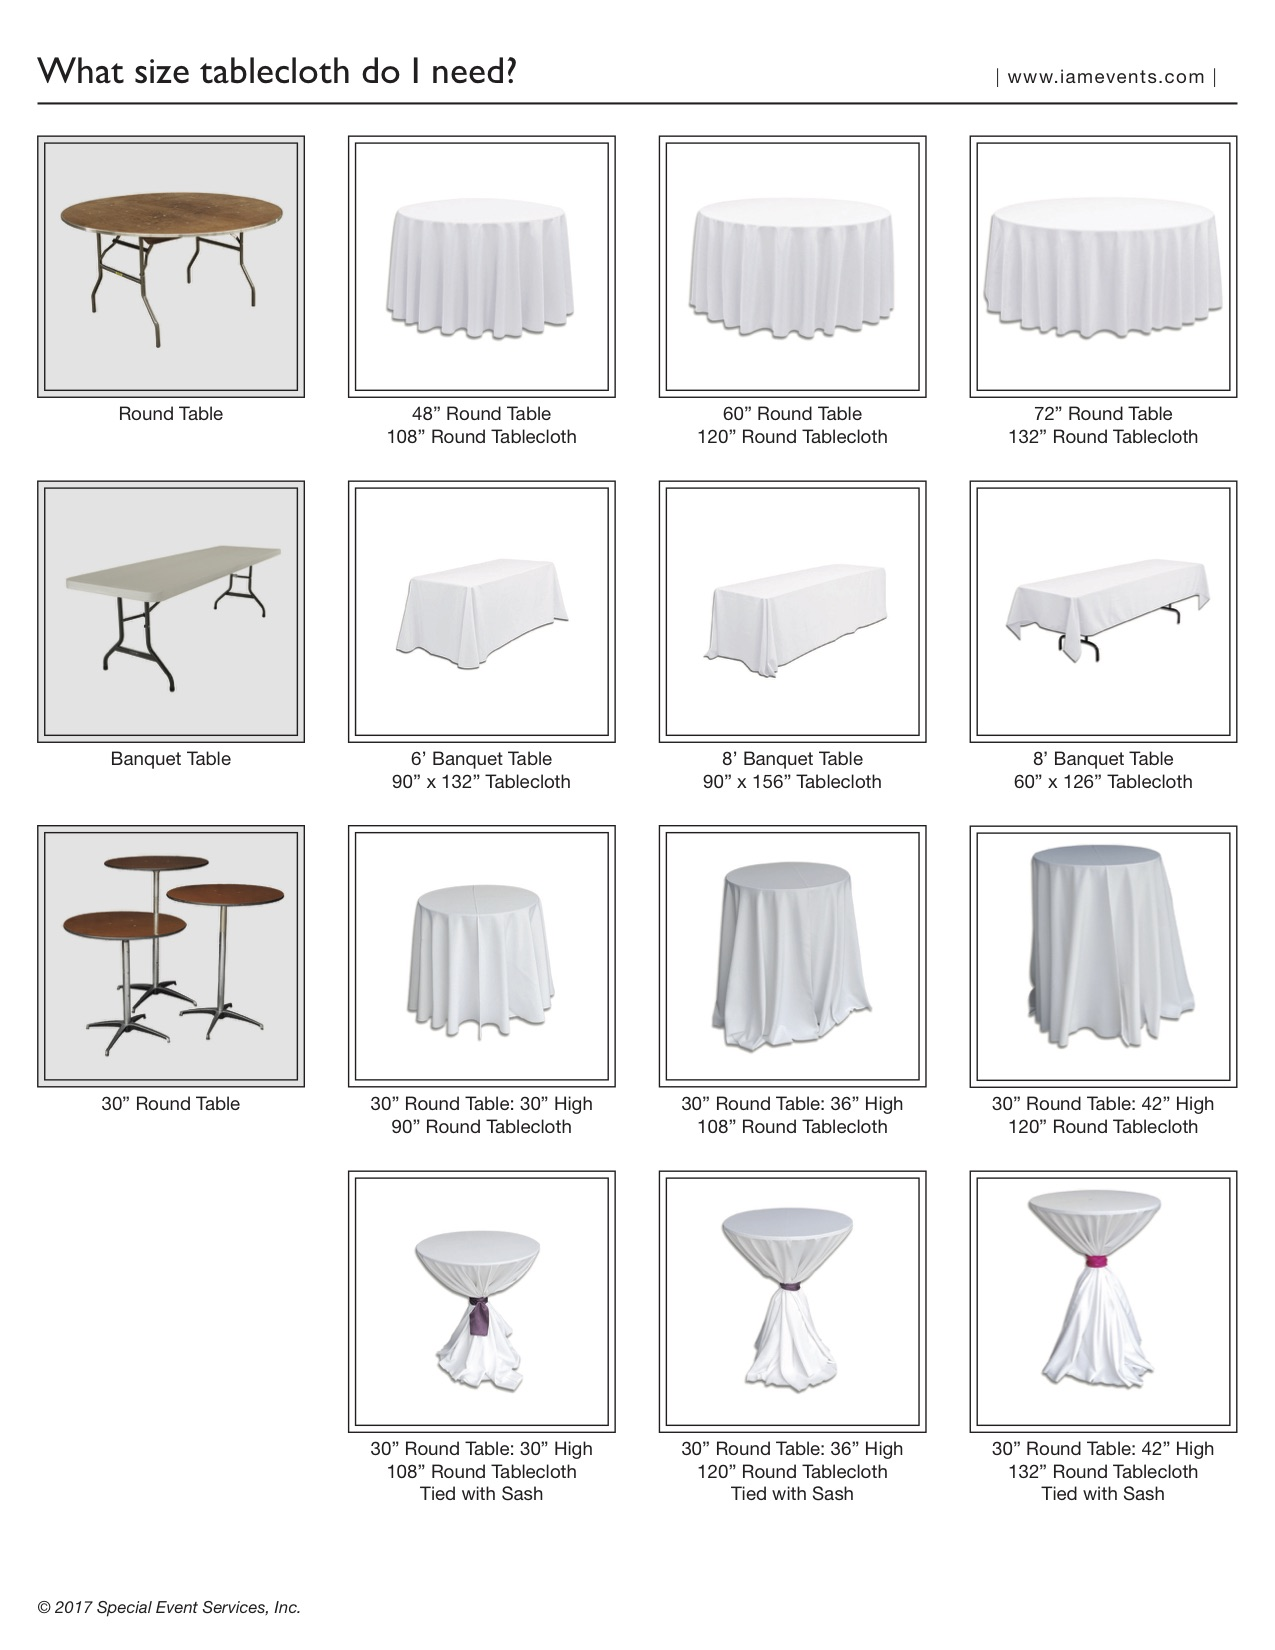 Round Tablecloths Sizes Round Table Ideas